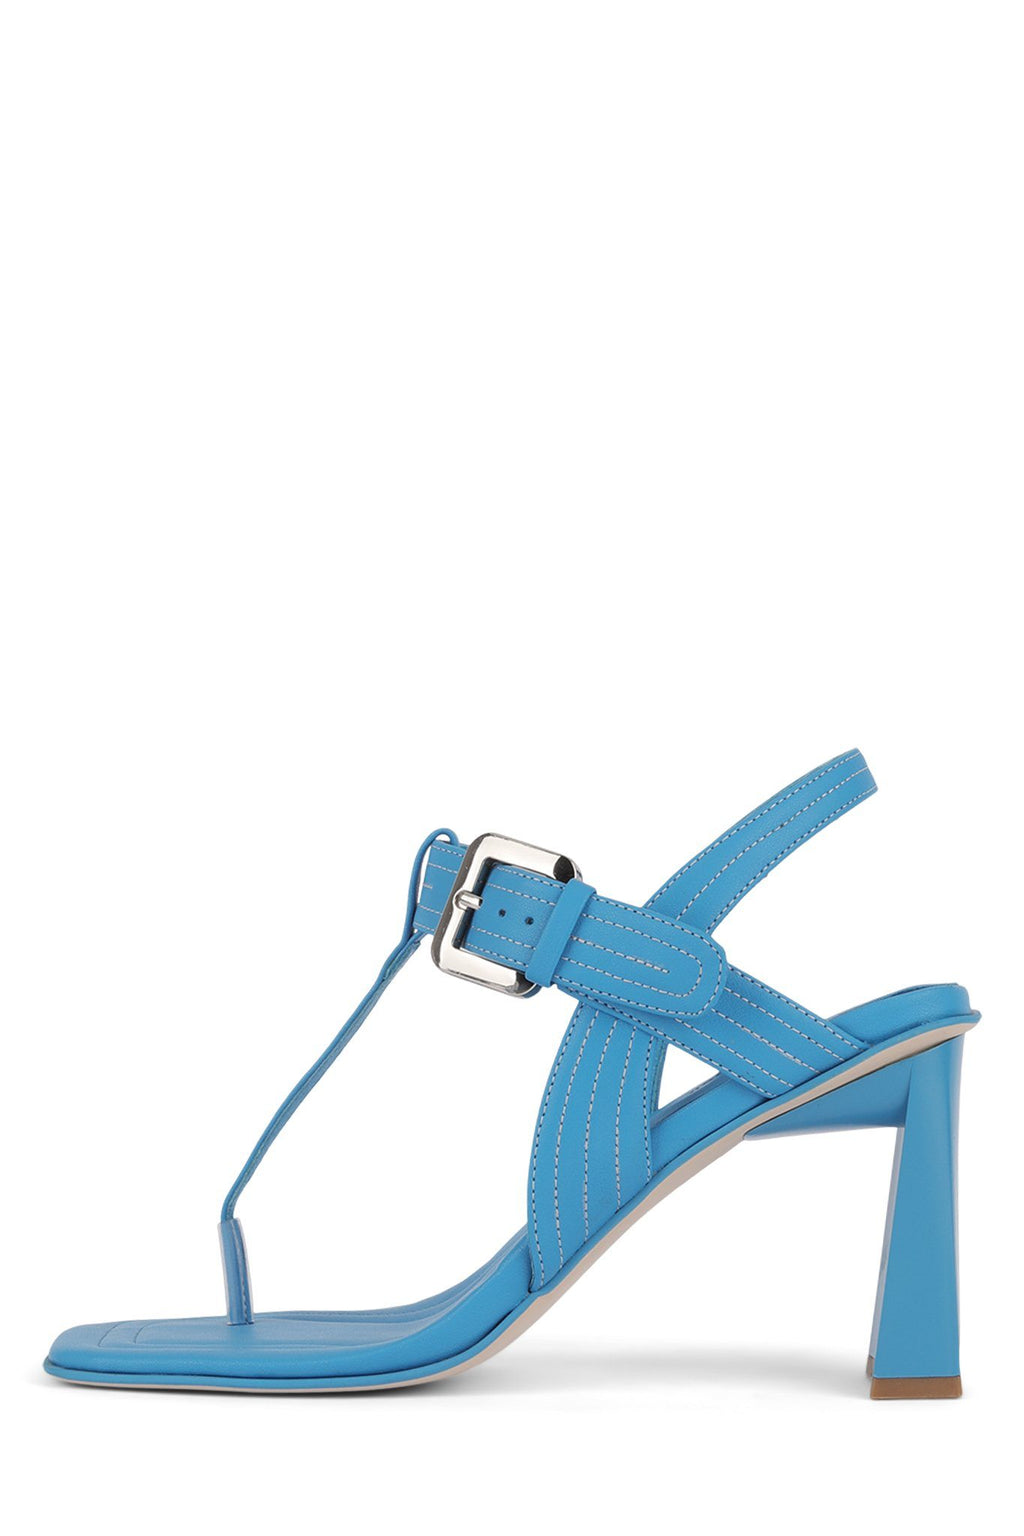 AMOK-HI Heeled Sandal Jeffrey Campbell Blue 6